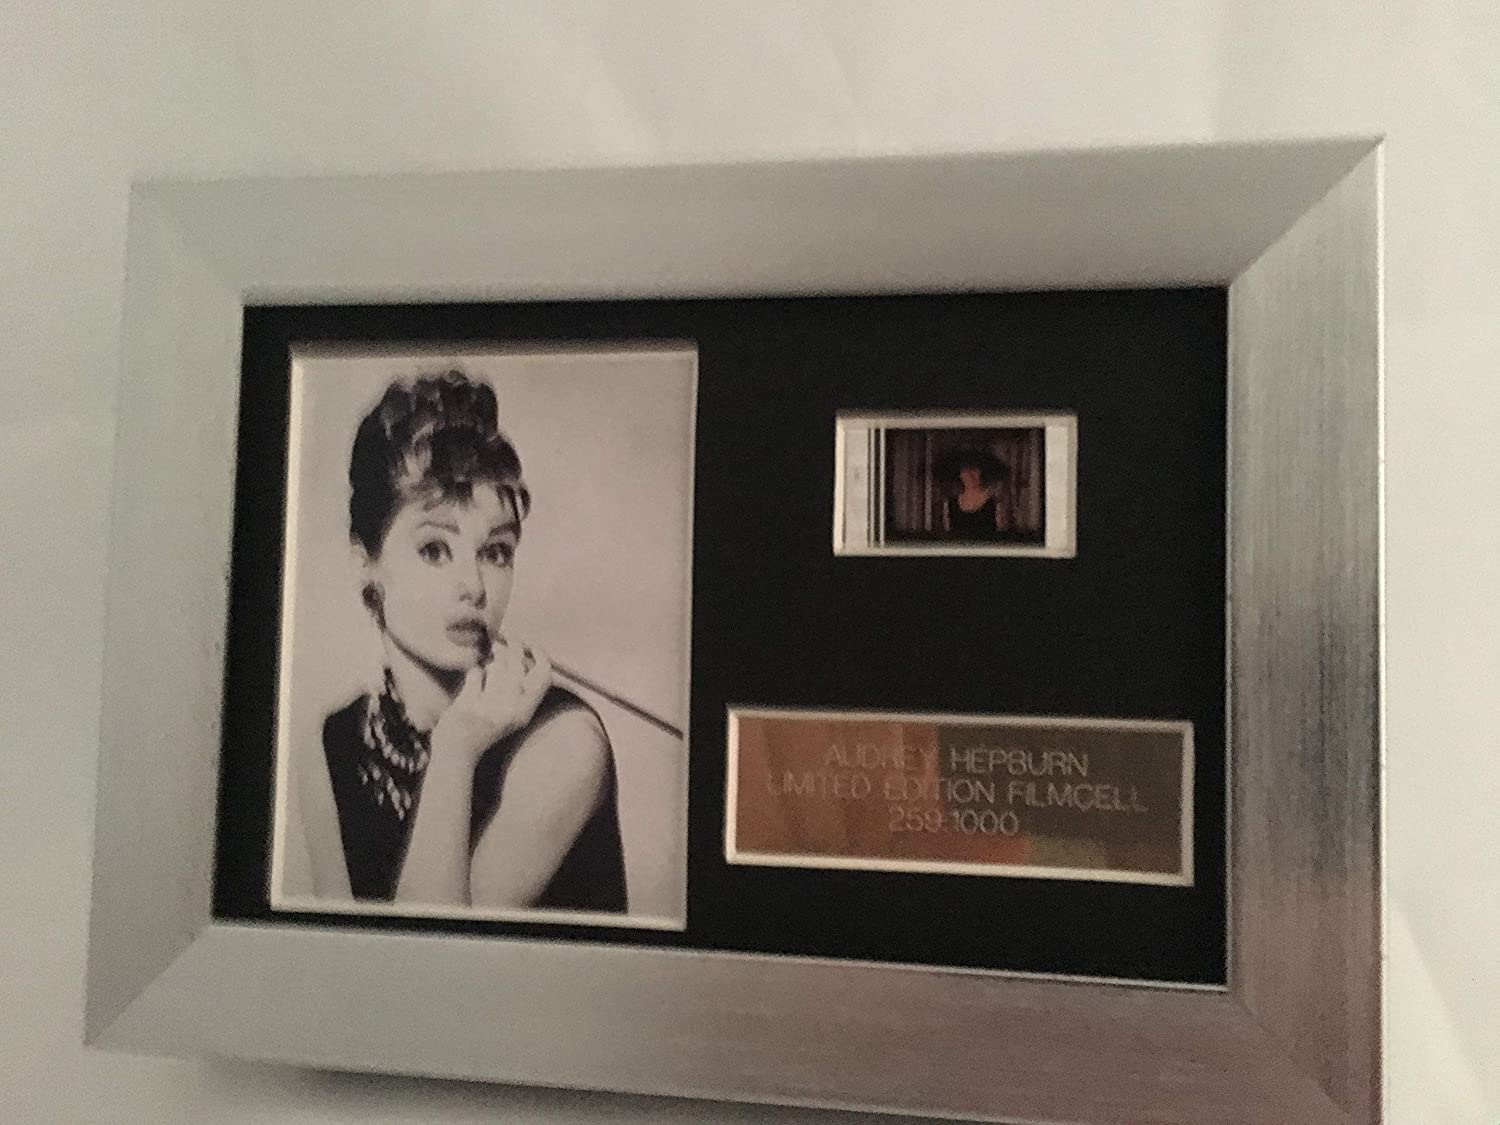 My Fair Lady Audrey Hepburn Limited Edition Film Cell m